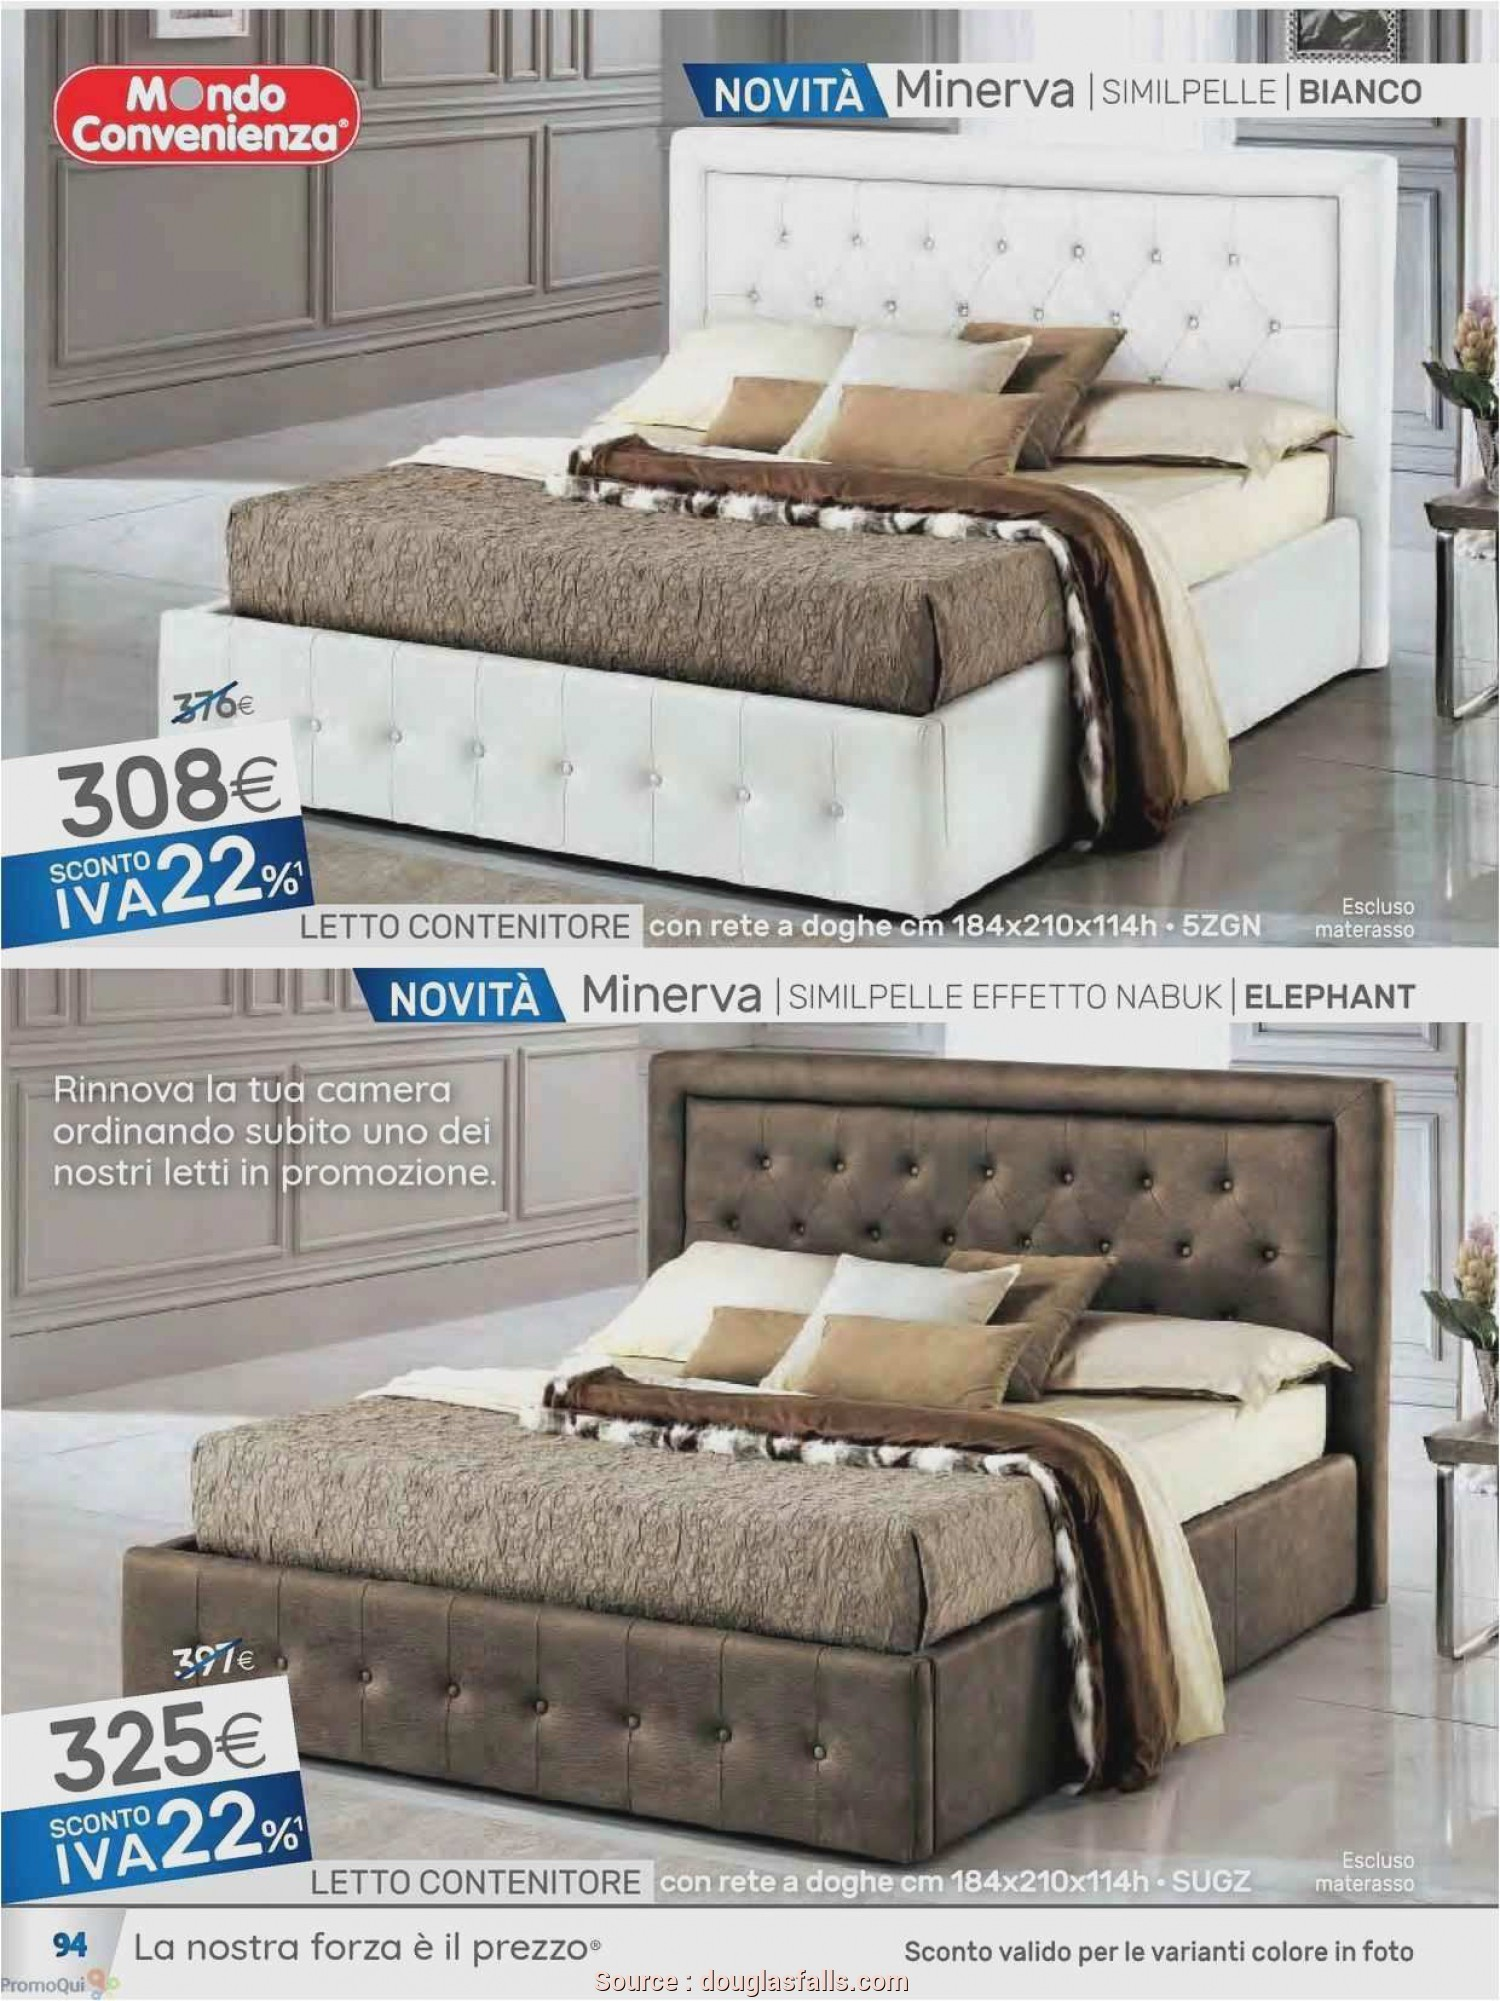 Letto Singolo Bloom Mondo Convenienza, Deale 37 Nouveau Letto Singolo Estraibile Mondo Convenienza Letto Bloom Mondo Convenienza